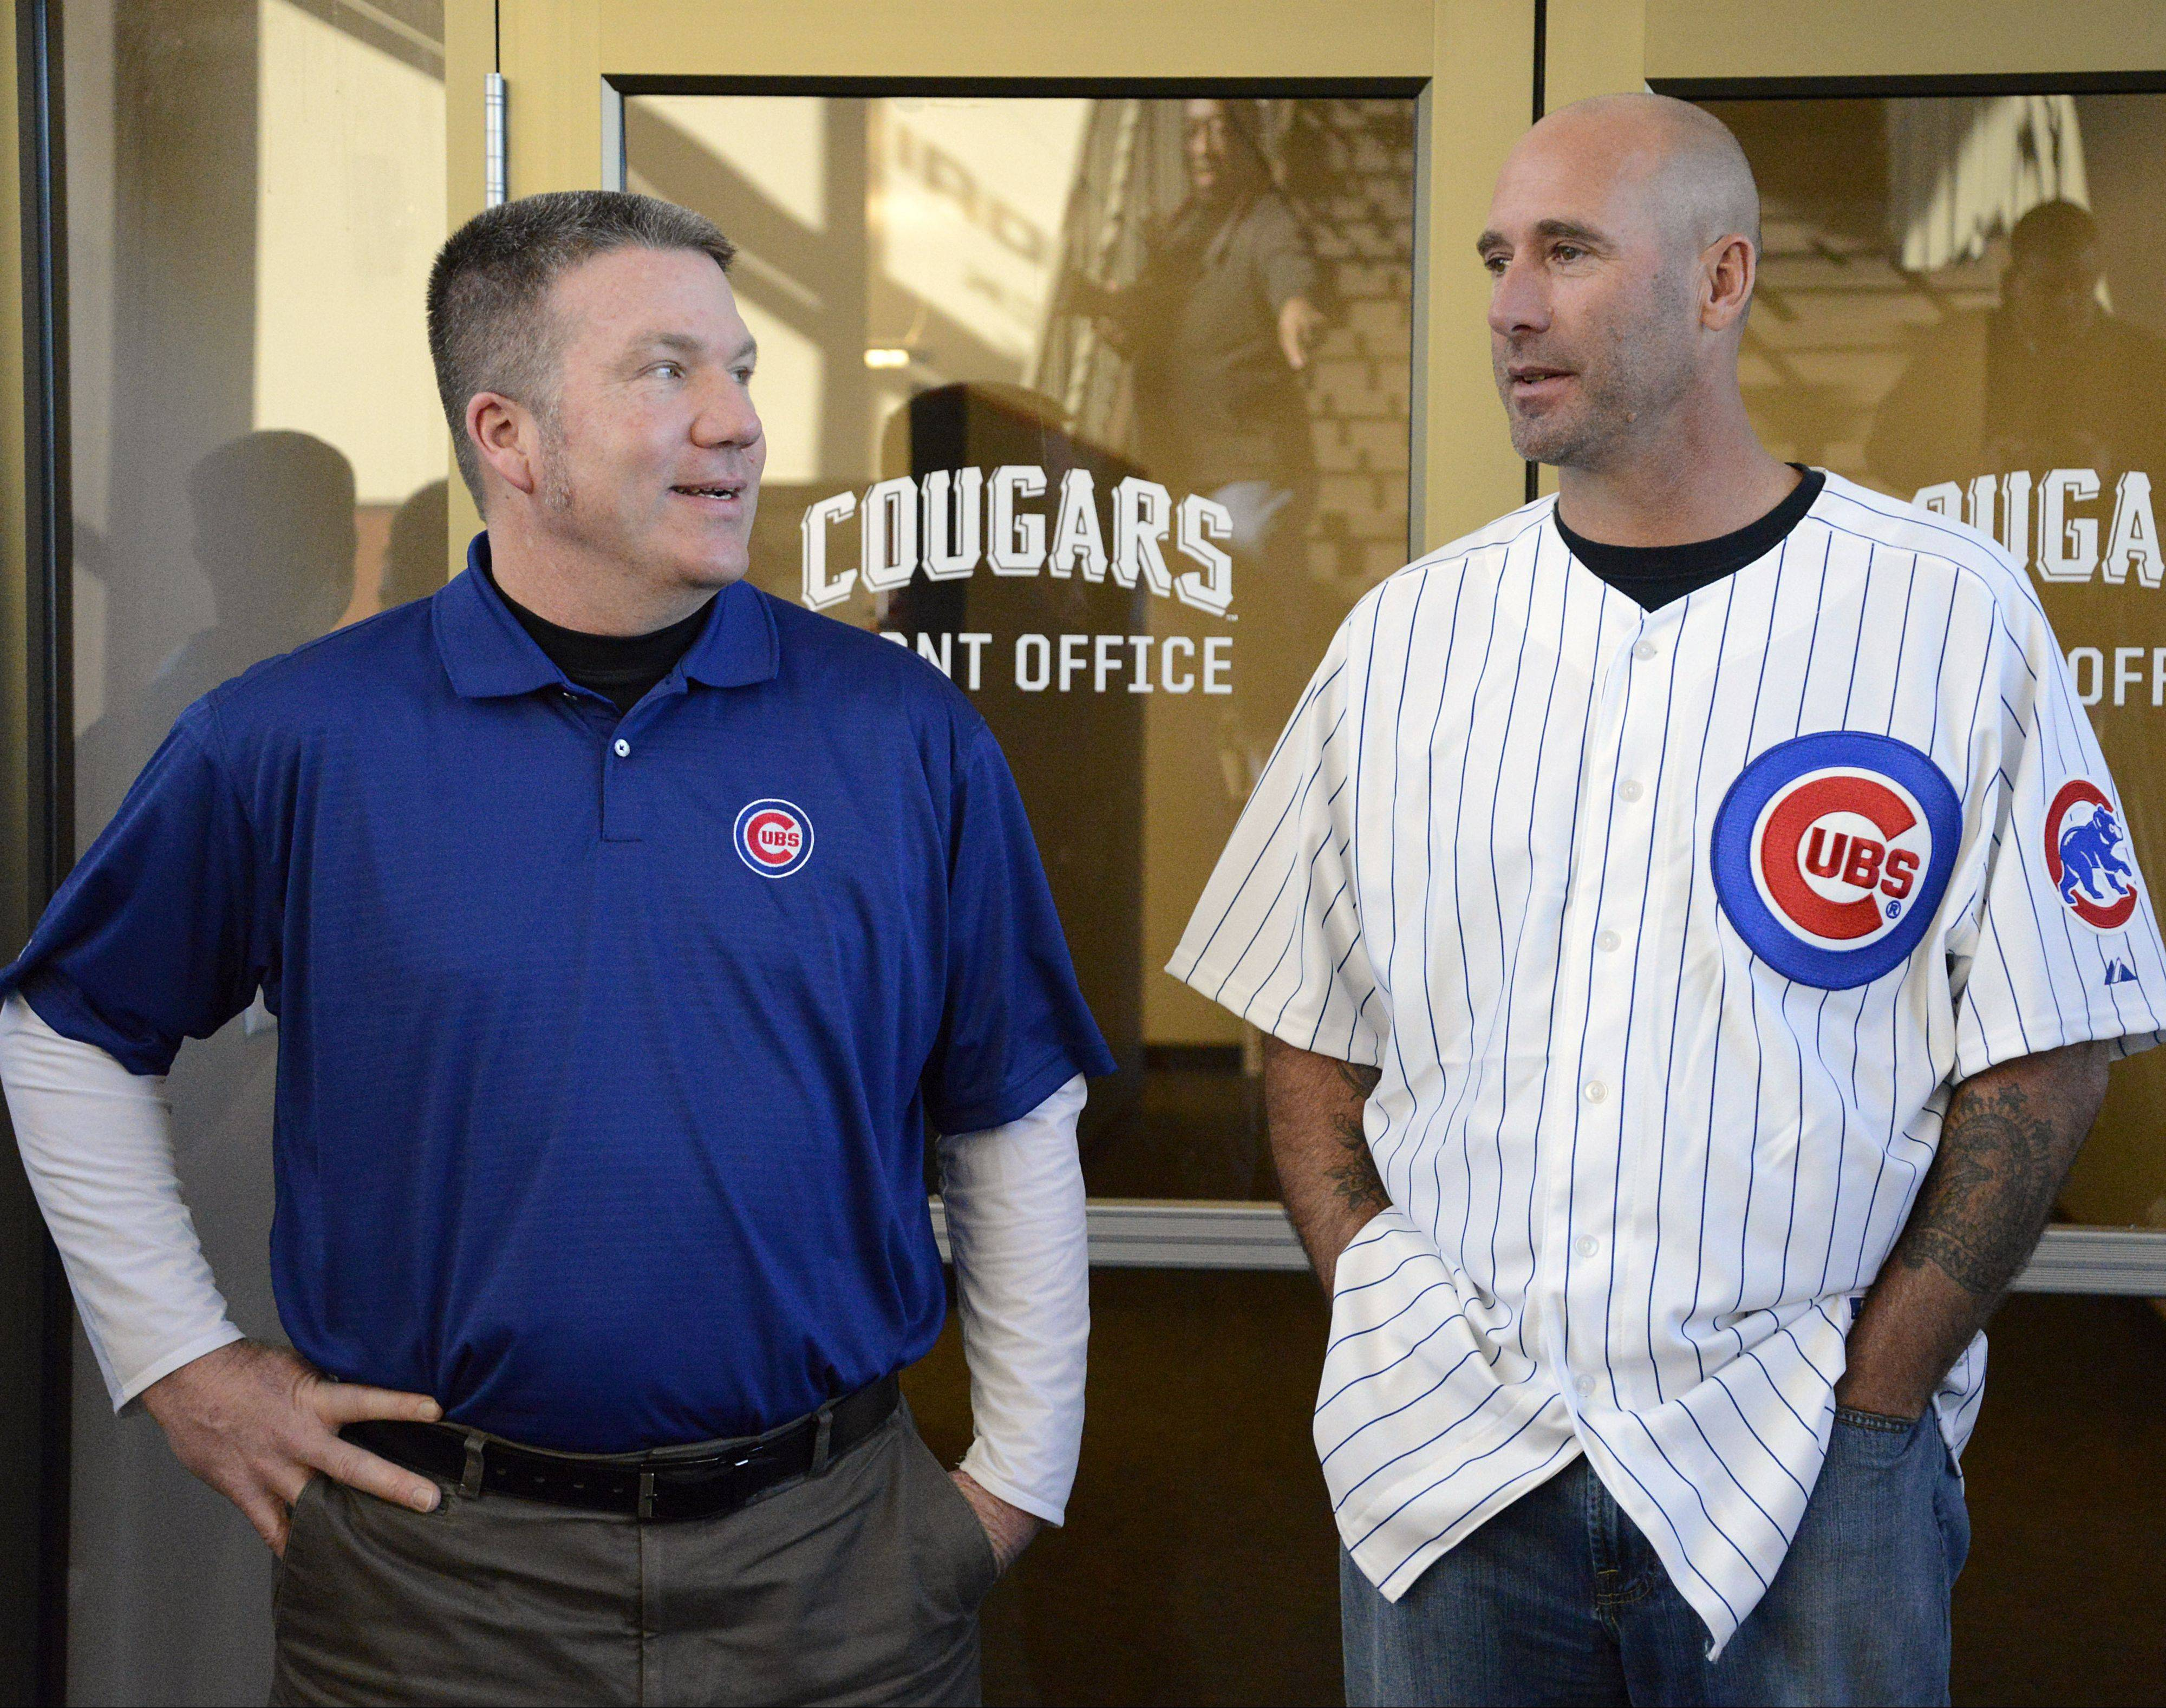 Kane County Cougars general manager Curtis Haug, left, and Chicago Cubs manager Dale Sveum chat during a visit between stops on theCubs On the Move 2013 Caravan Tour in Geneva Jan. 17. Players, coaches and staff of the Chicago Cubs Cubs On the Move 2013 Caravan Tour came by after meeting with children at an Oswego school.